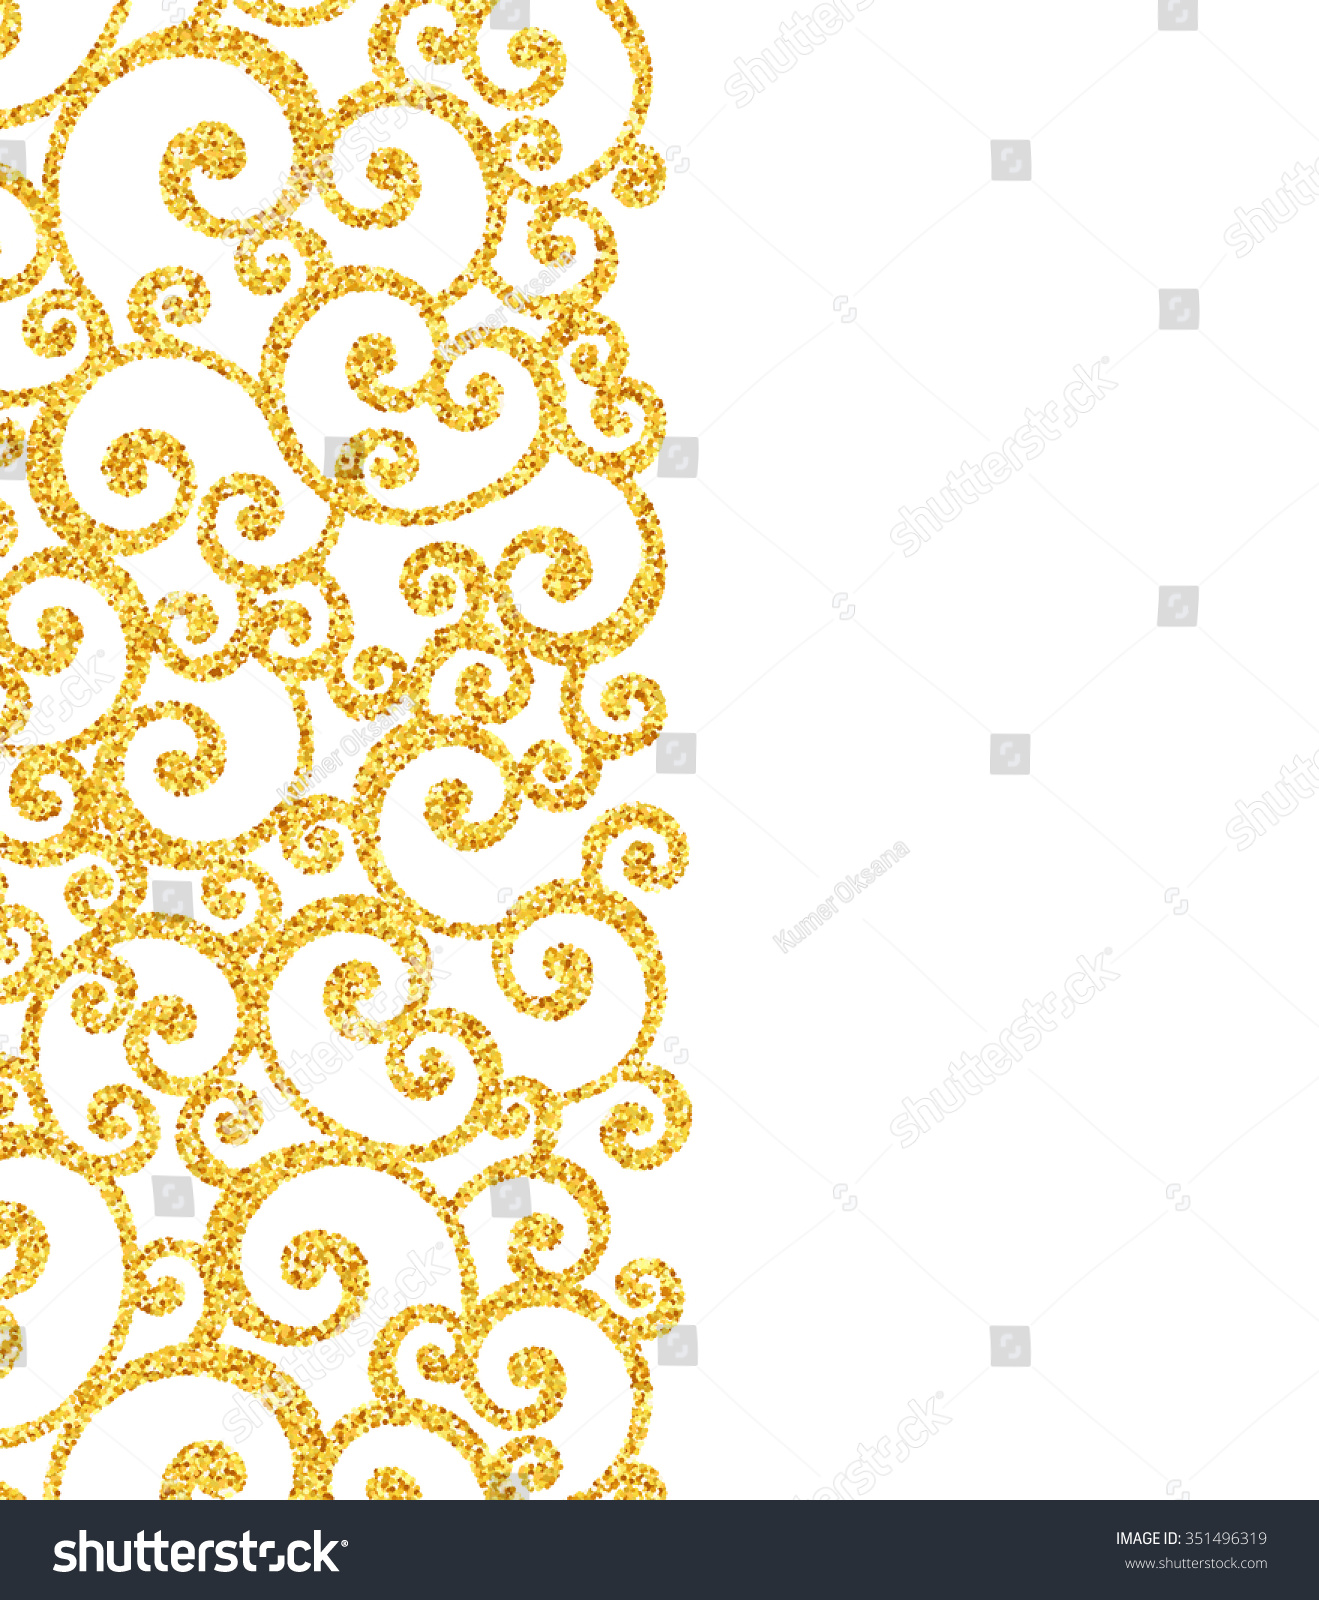 Gold glitter bright vector transparent background golden sparkles - Vector Gold Glitter Swirl Pattern Golden Sparkles On White Background Vip Design Template